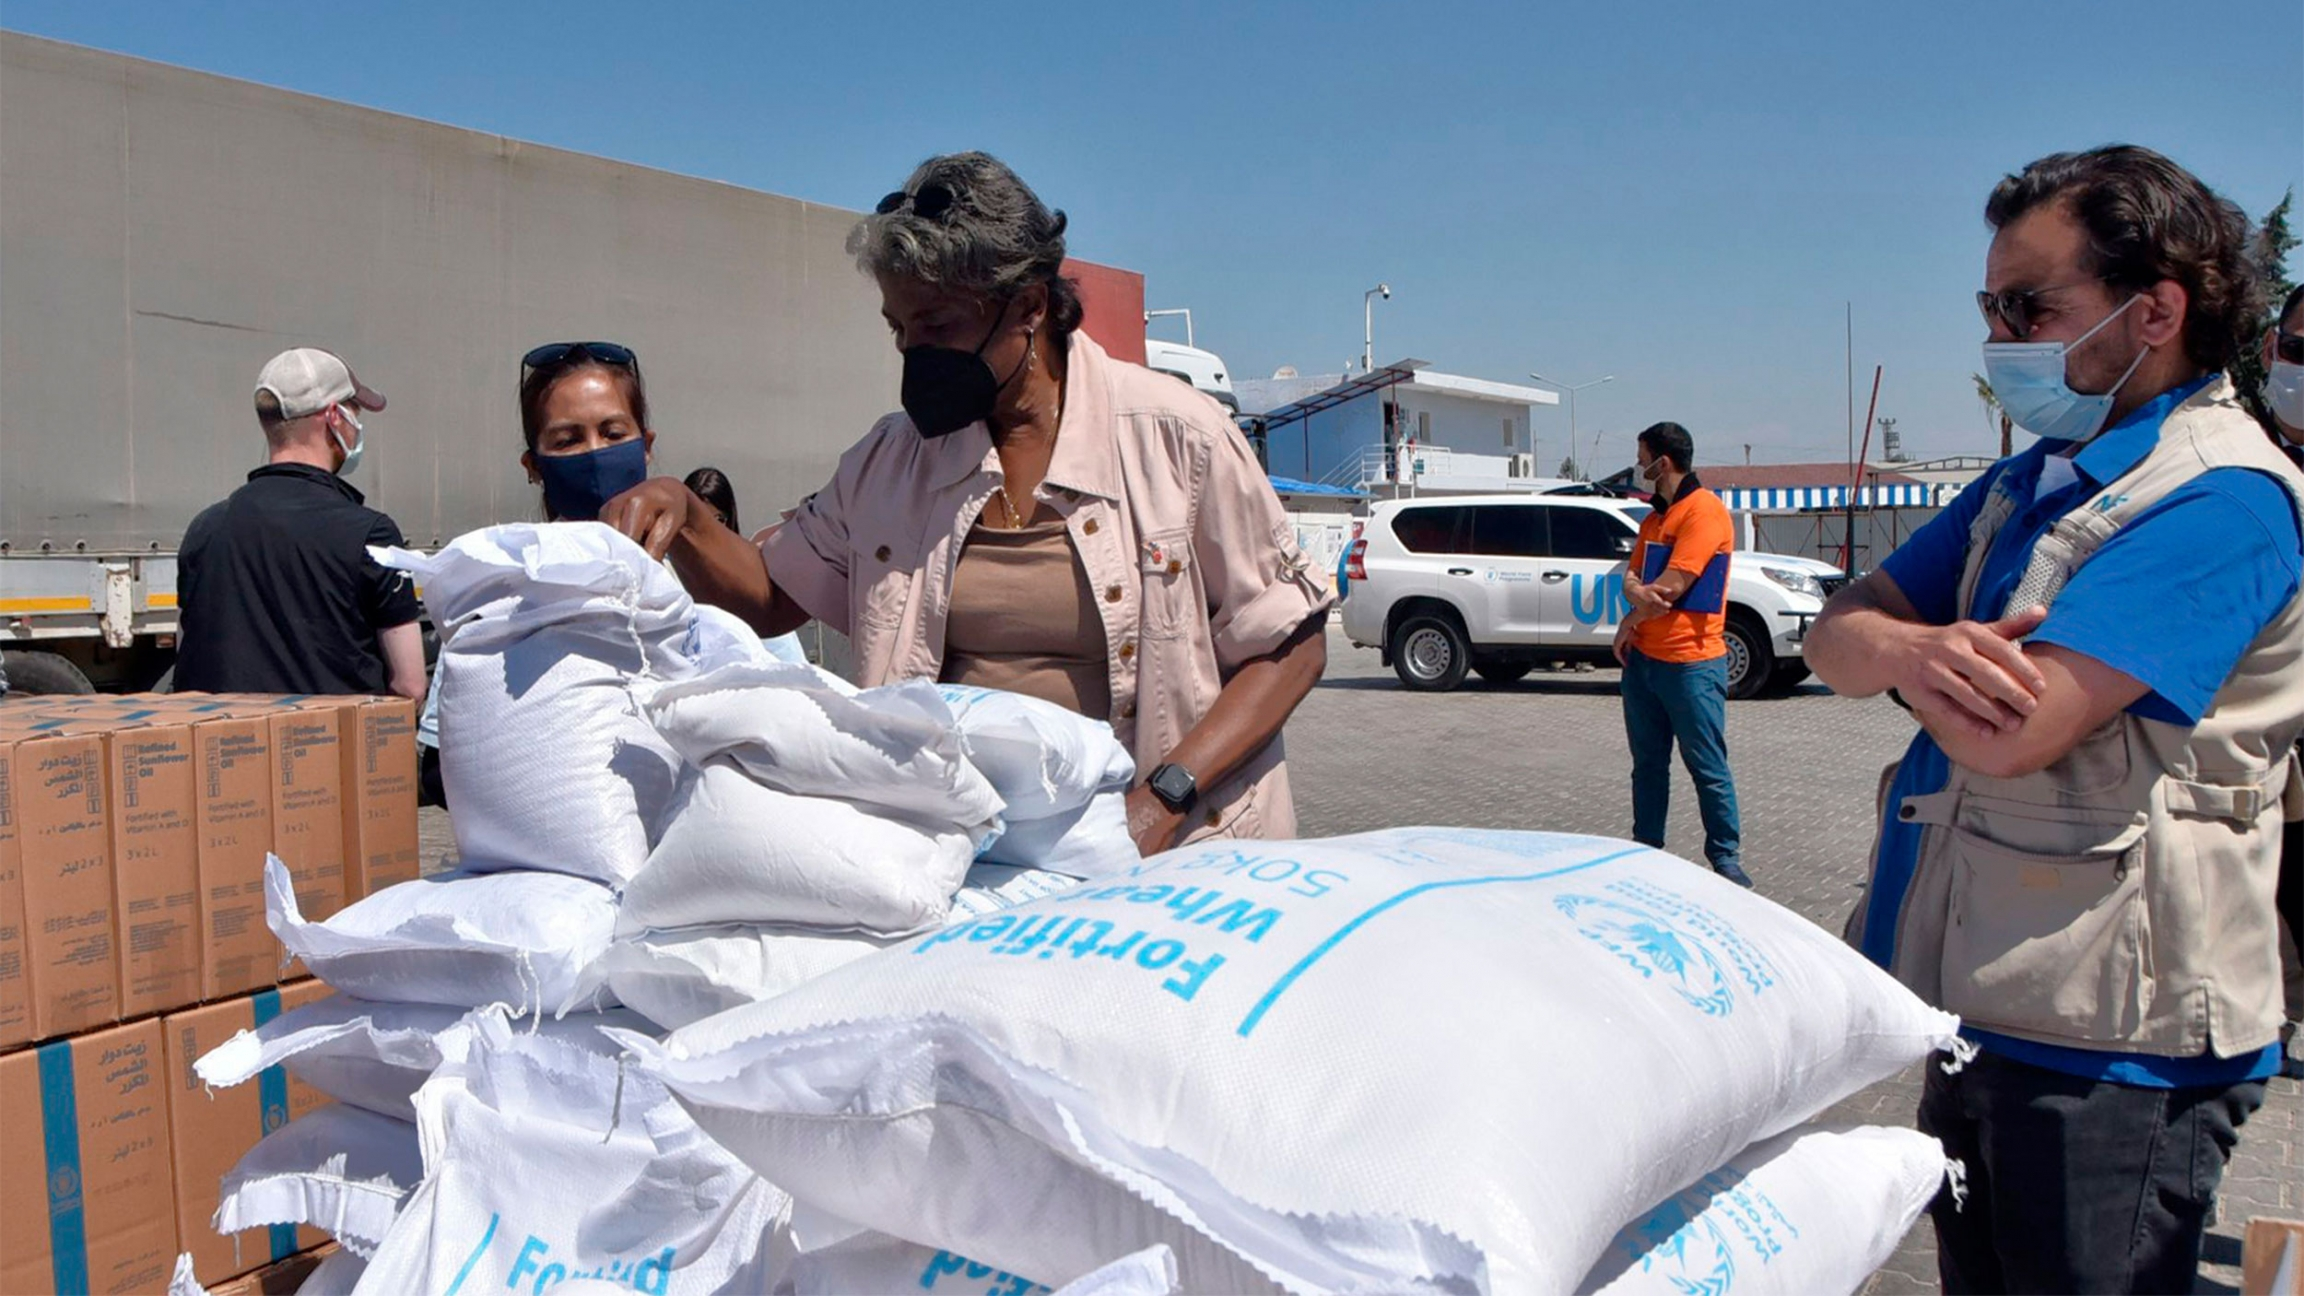 People wearing masks stand in front of white bags of food aid